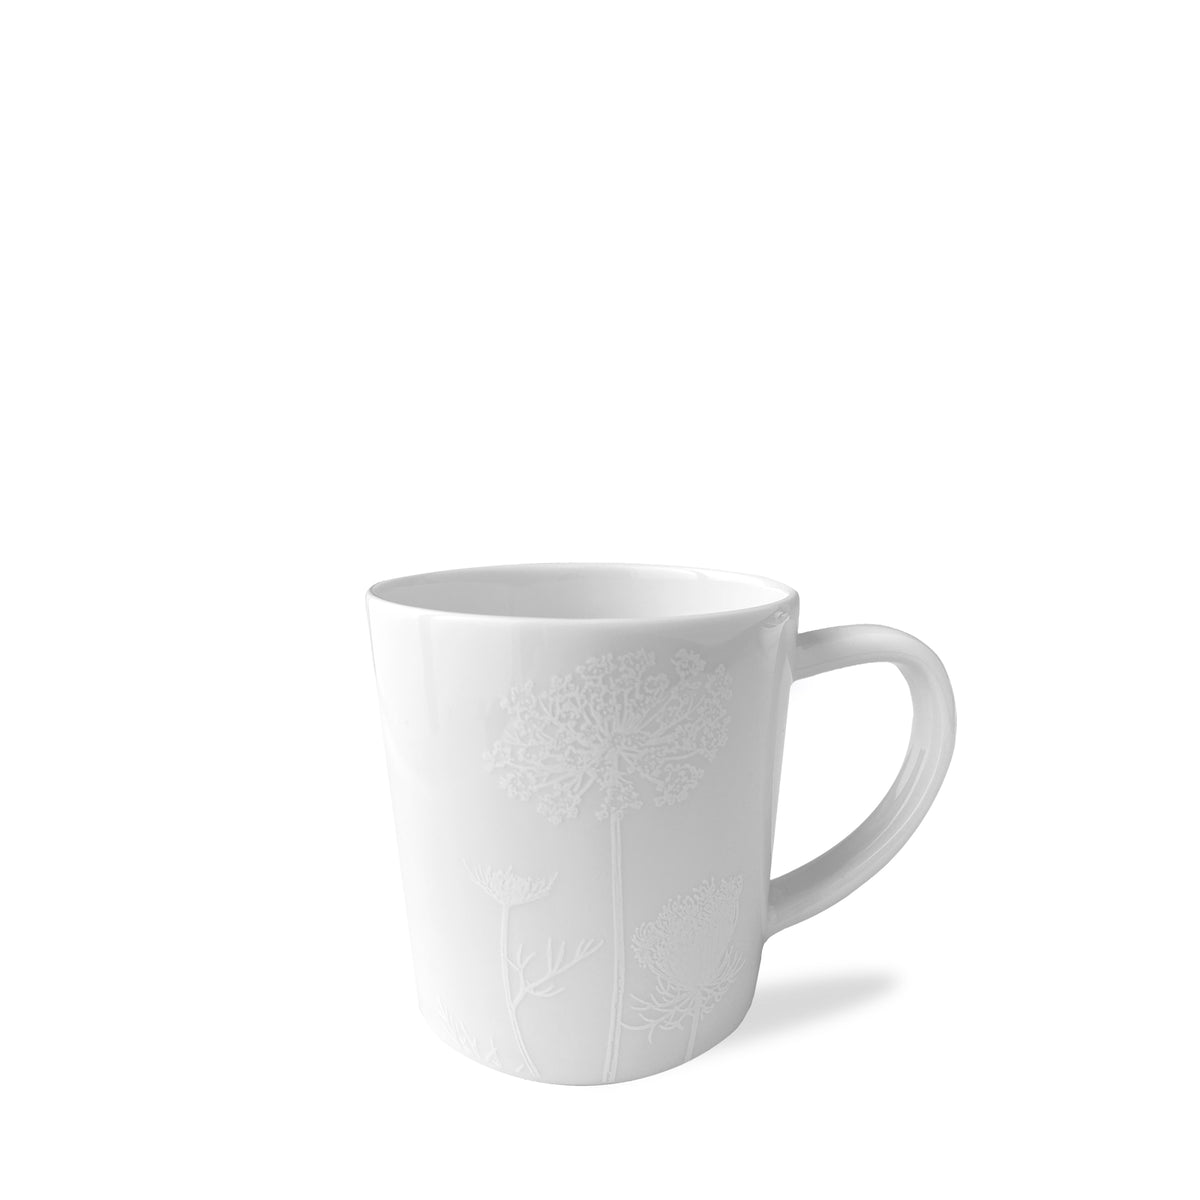 "Summer 4"" Wide Mug - WHITE - Caskata"